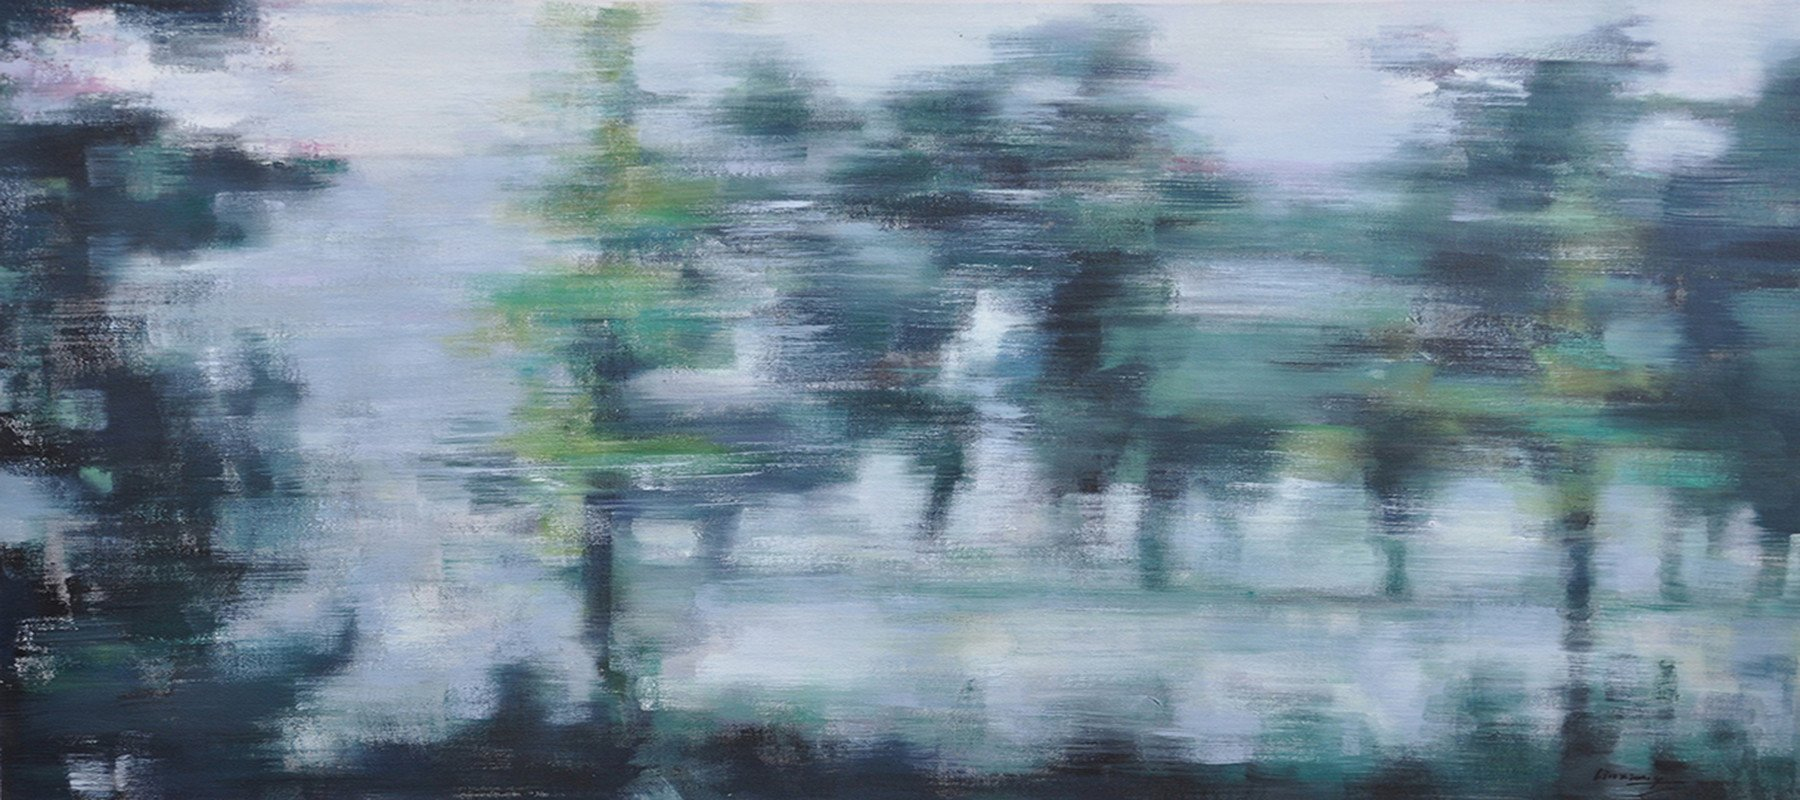 Large Abstract Art,Panoramic Abstract Landscape Painting,Wall Art Ideas For Living Room,Grey,Dark Green,Black.etc